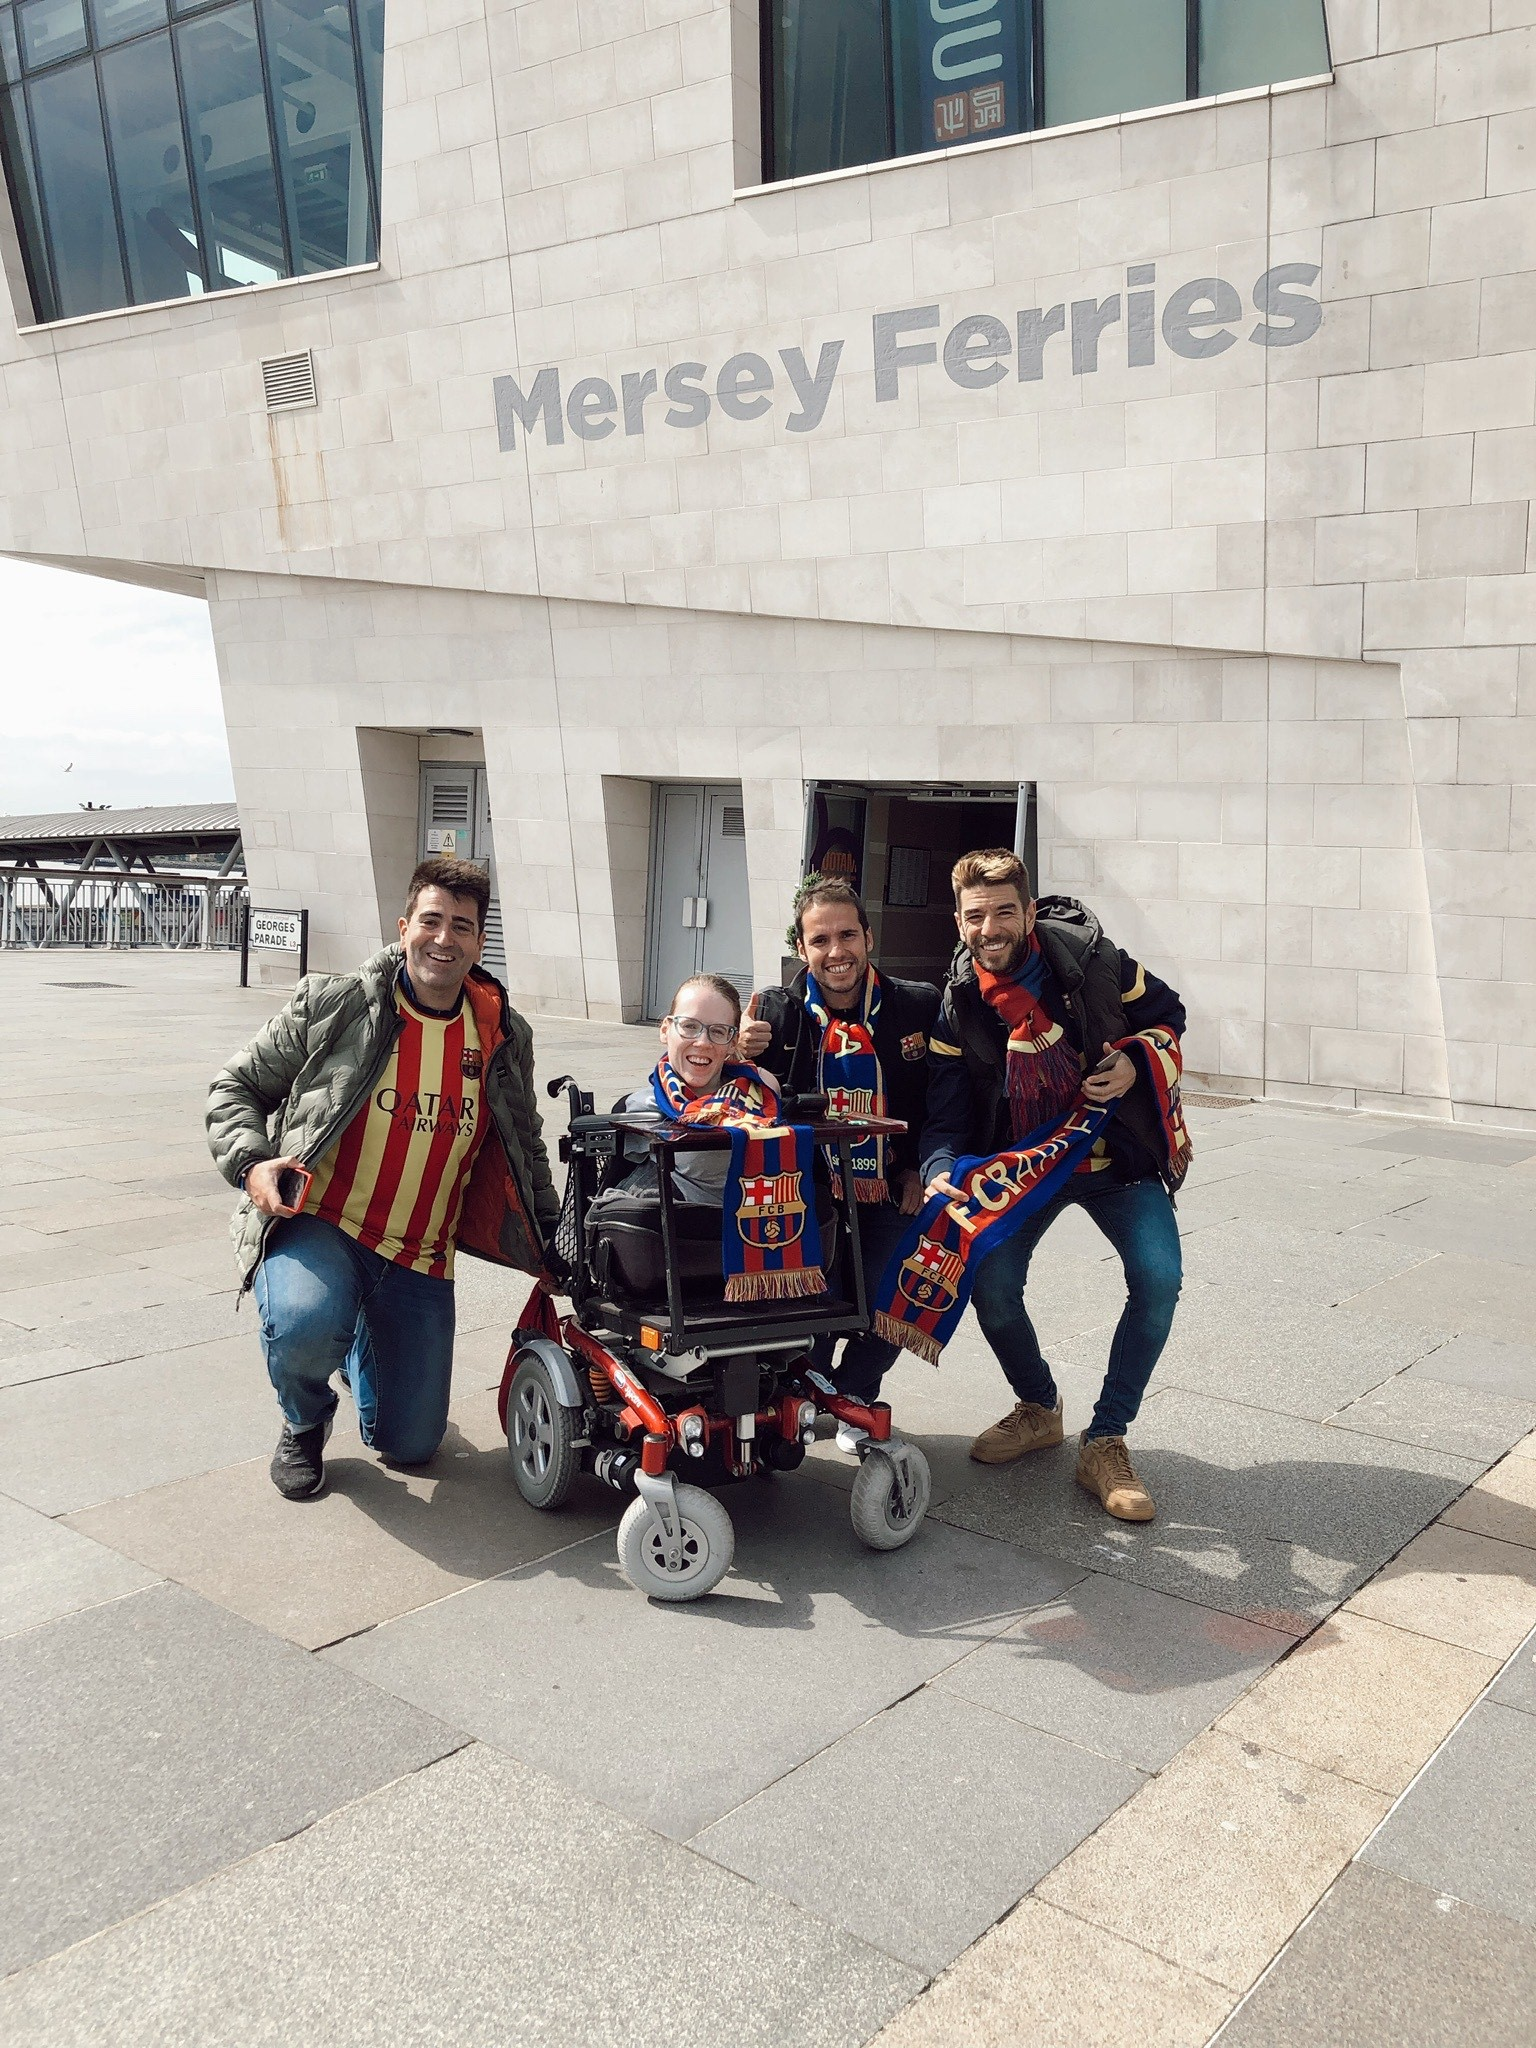 Joanne pictured with fellow Barcelona FC fans at her first Champions League game. © Joanne O'Riordan